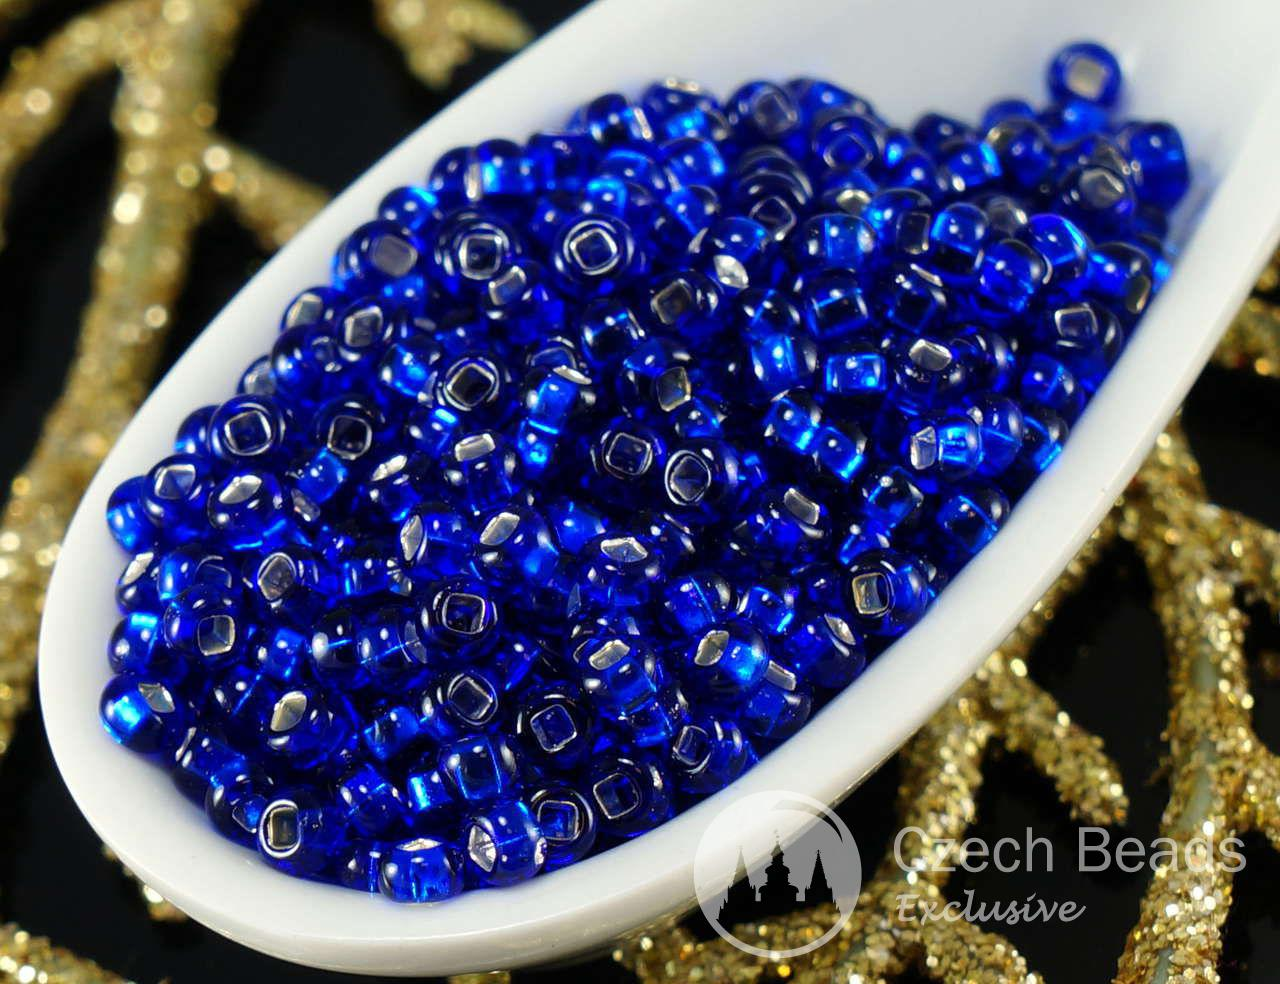 20g Blue Silver Lined Czech Glass Seed Beads 9/0 PRECIOSA Size 9 Pearls Rocaille Spacer 2.6mm for $1.92 from Czech Beads Exclusive